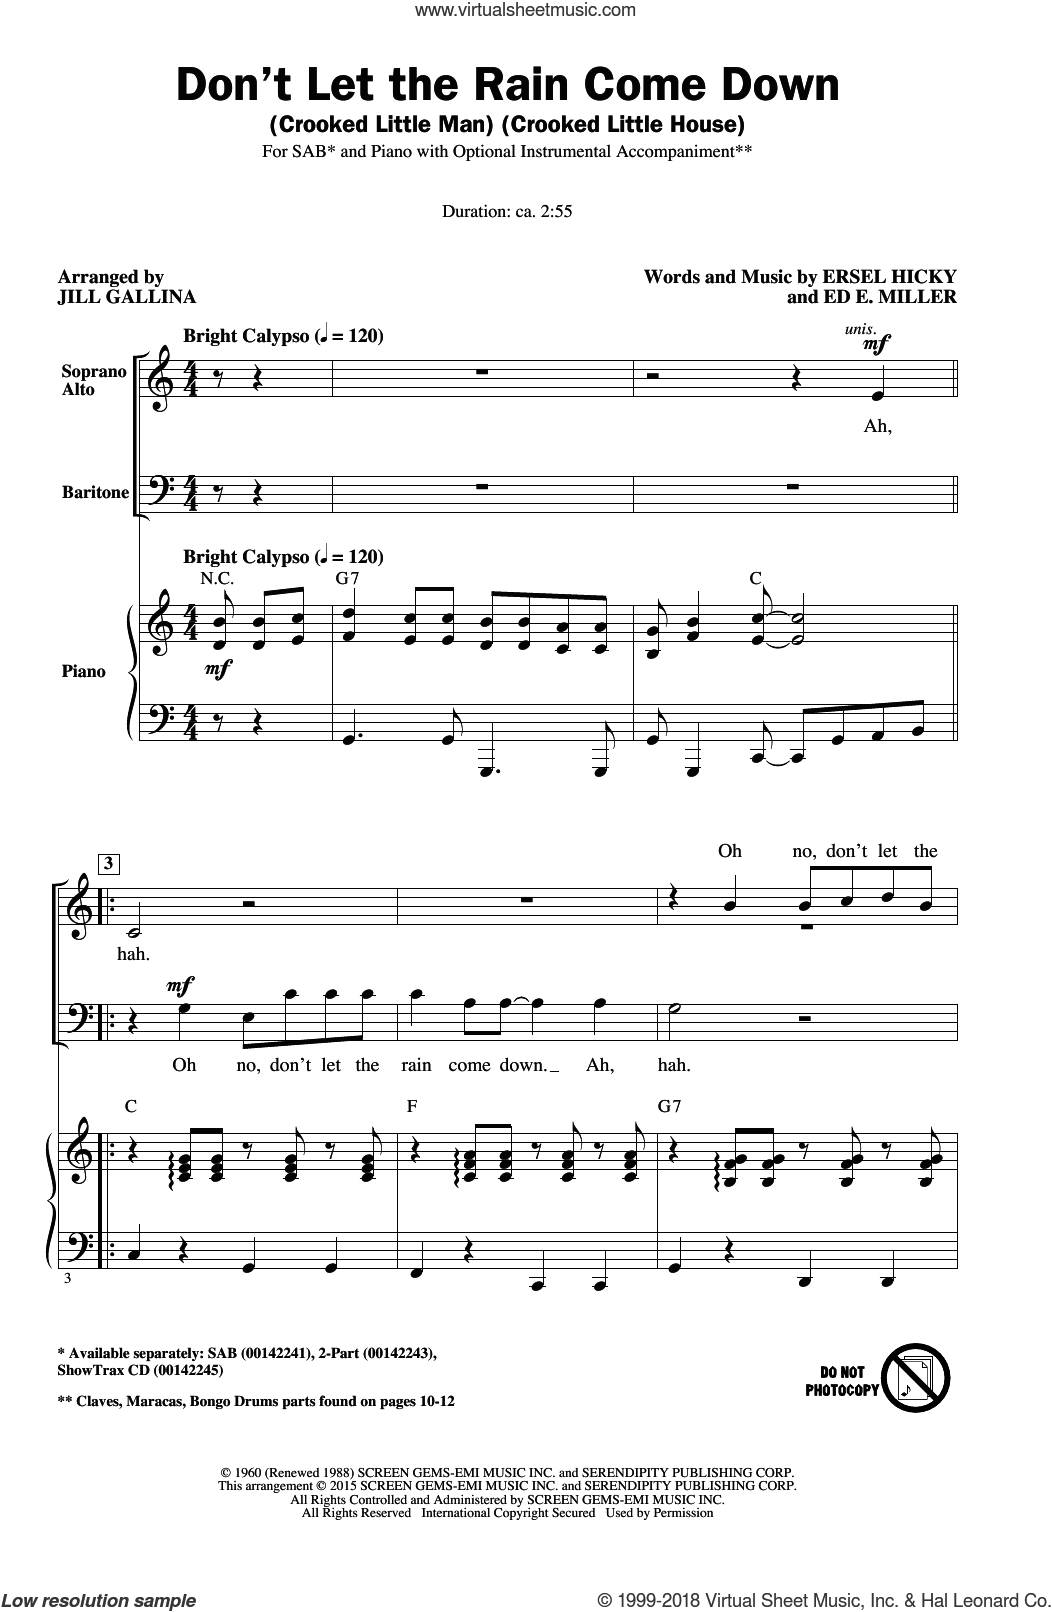 Don't Let The Rain Come Down (Crooked Little Man) (Crooked Little House) sheet music for choir and piano (SAB) by Ersel Hicky and Jill Gallina. Score Image Preview.